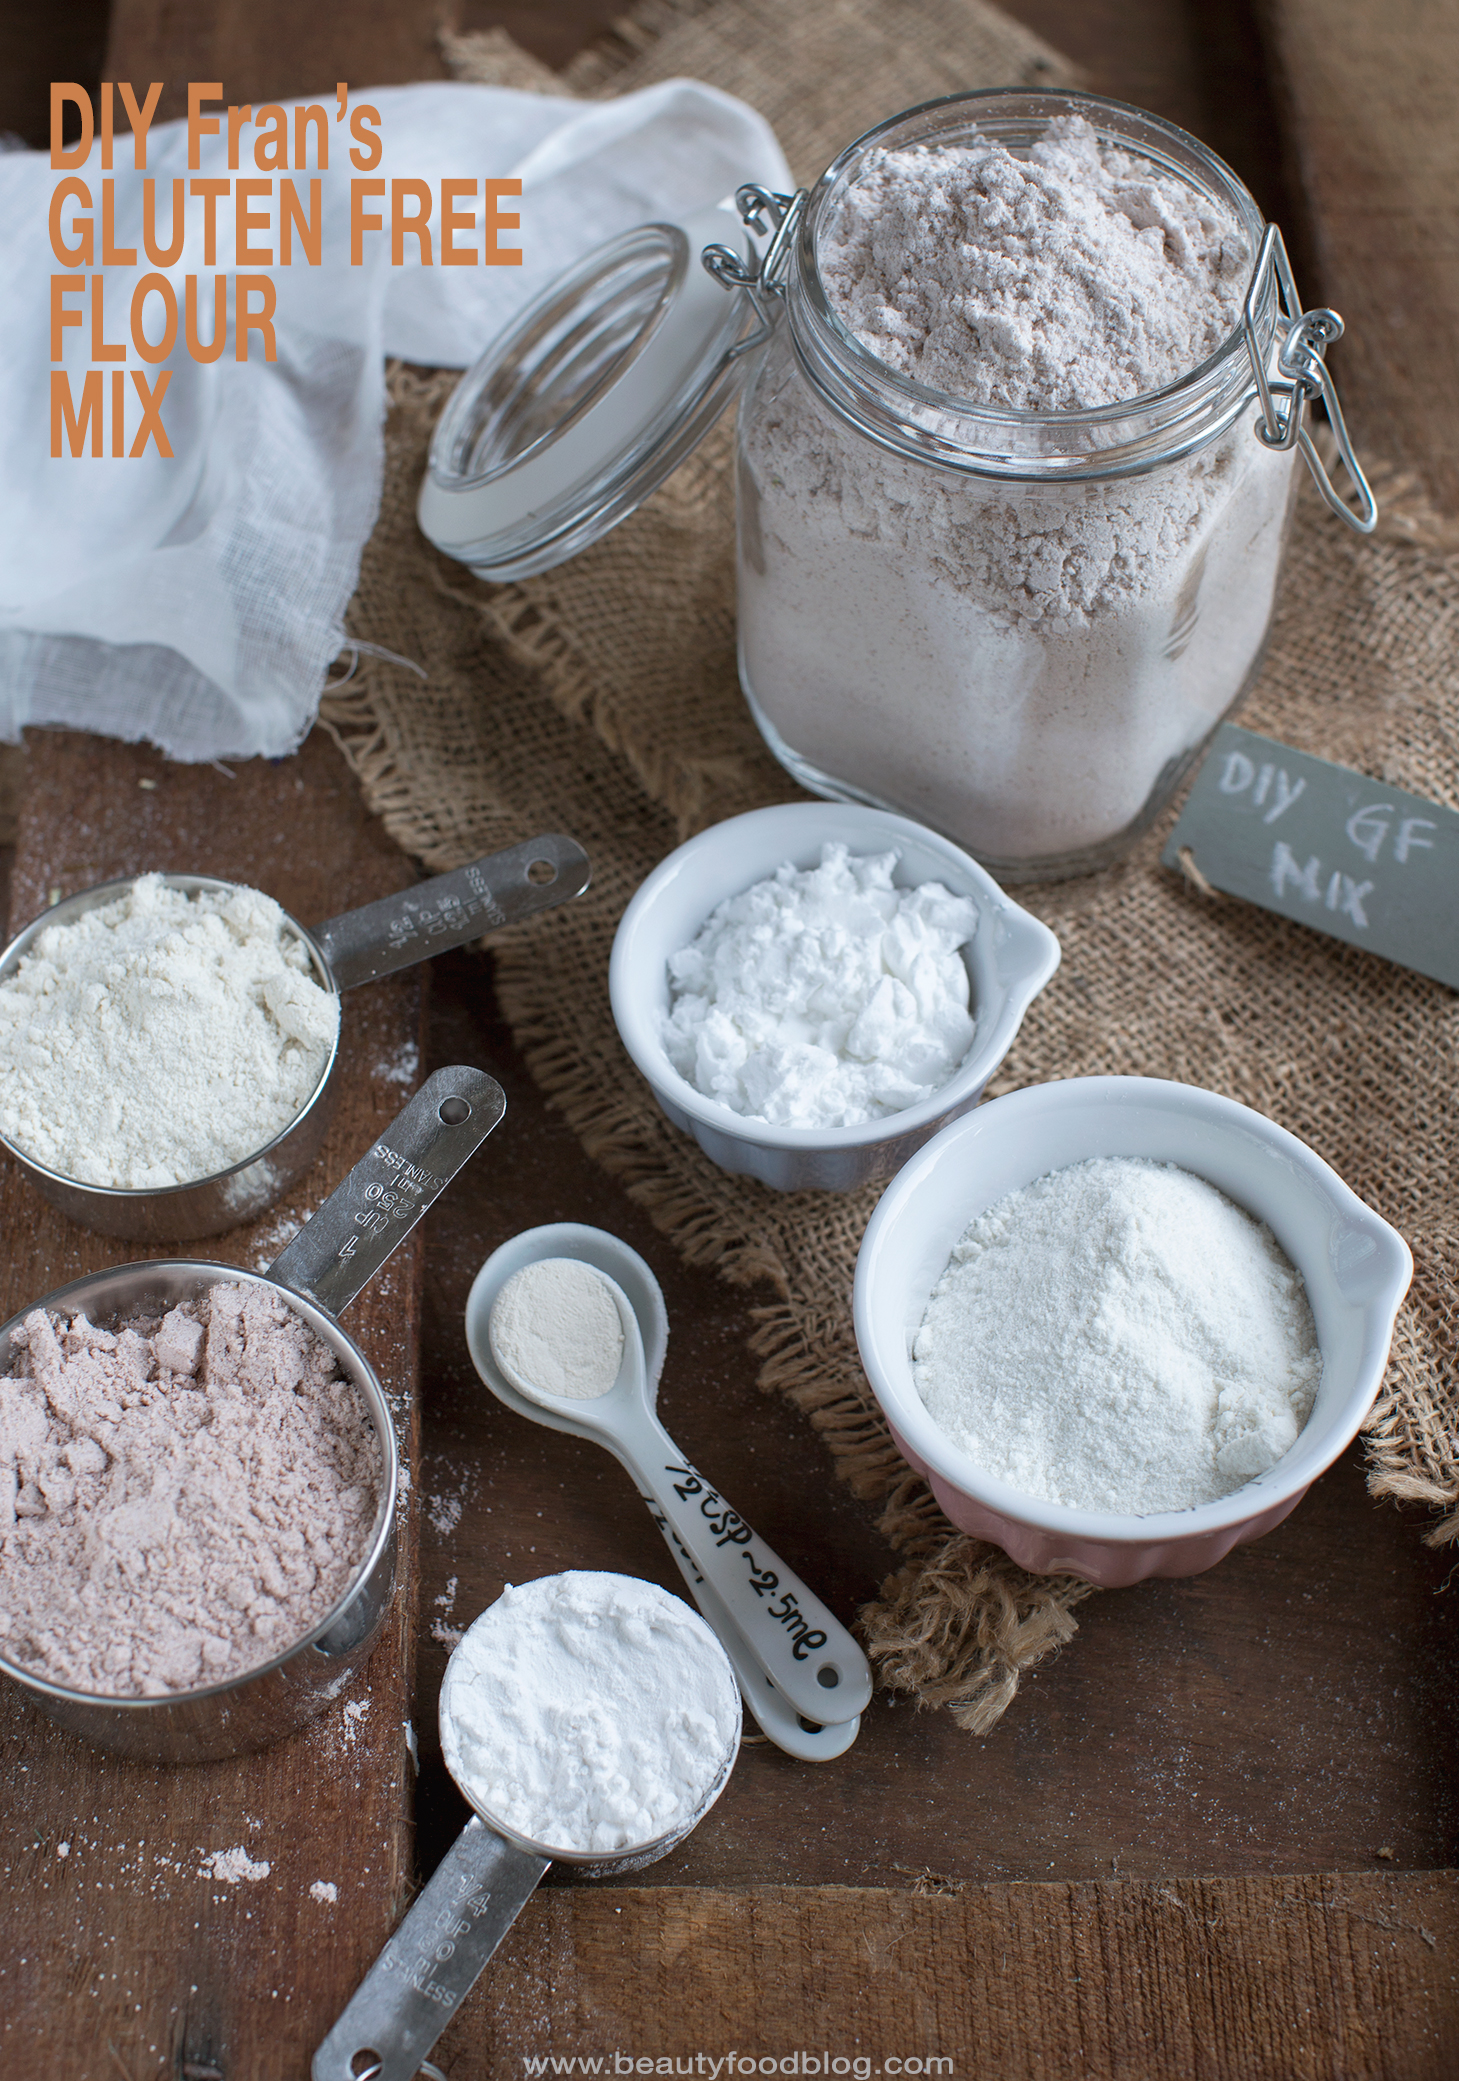 Diy Gluten Free Flour Mix Beauty Food Blog